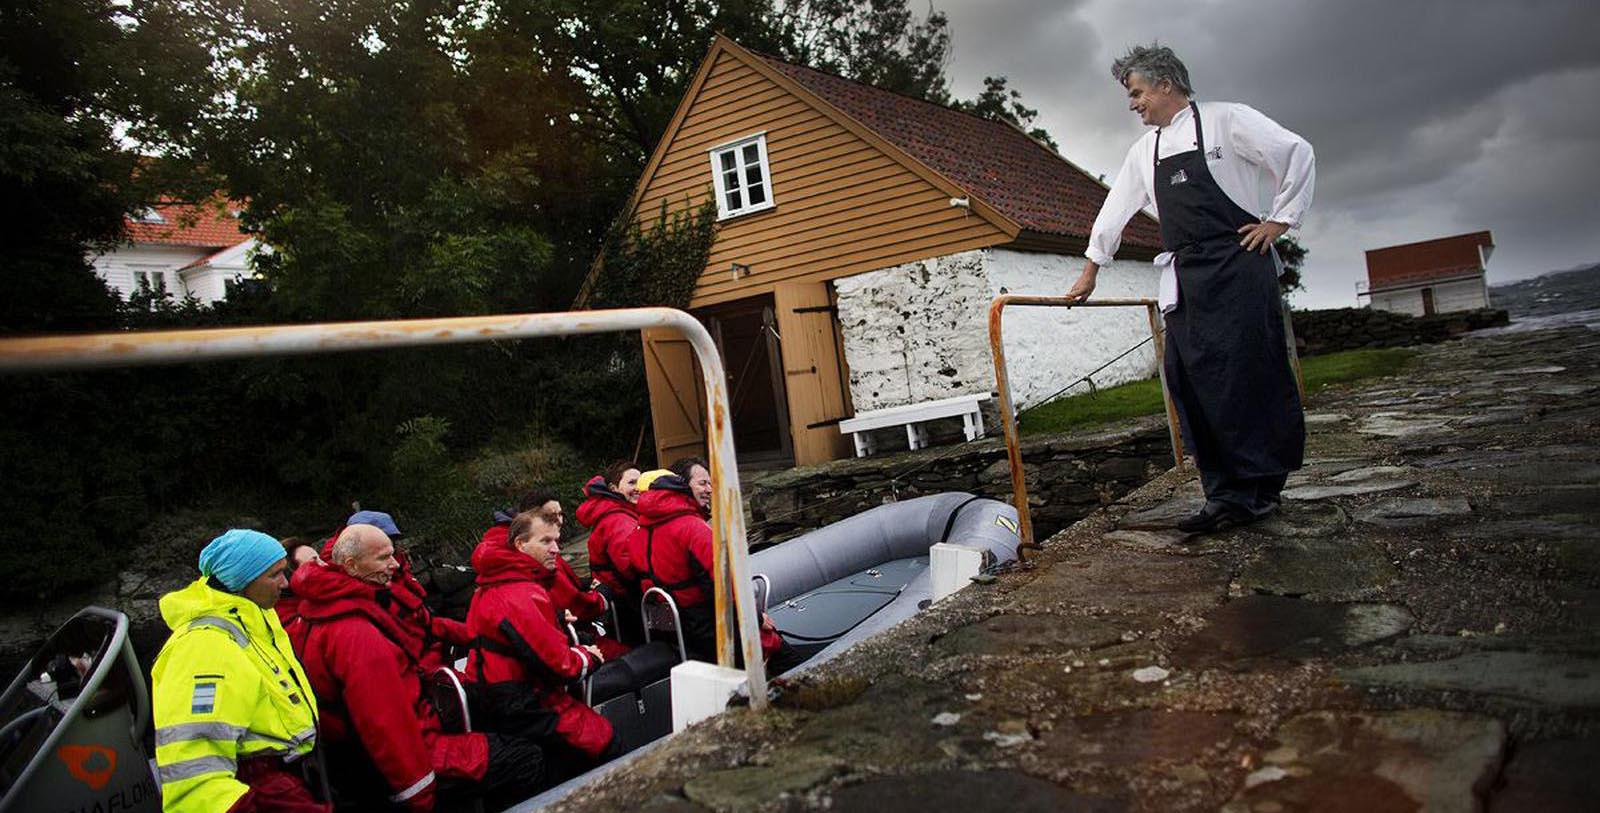 Image of Guests on Boat Høyevarde Fyrhotell, 1700, Member of Historic Hotels Worldwide, in Havik, Norway, Explore